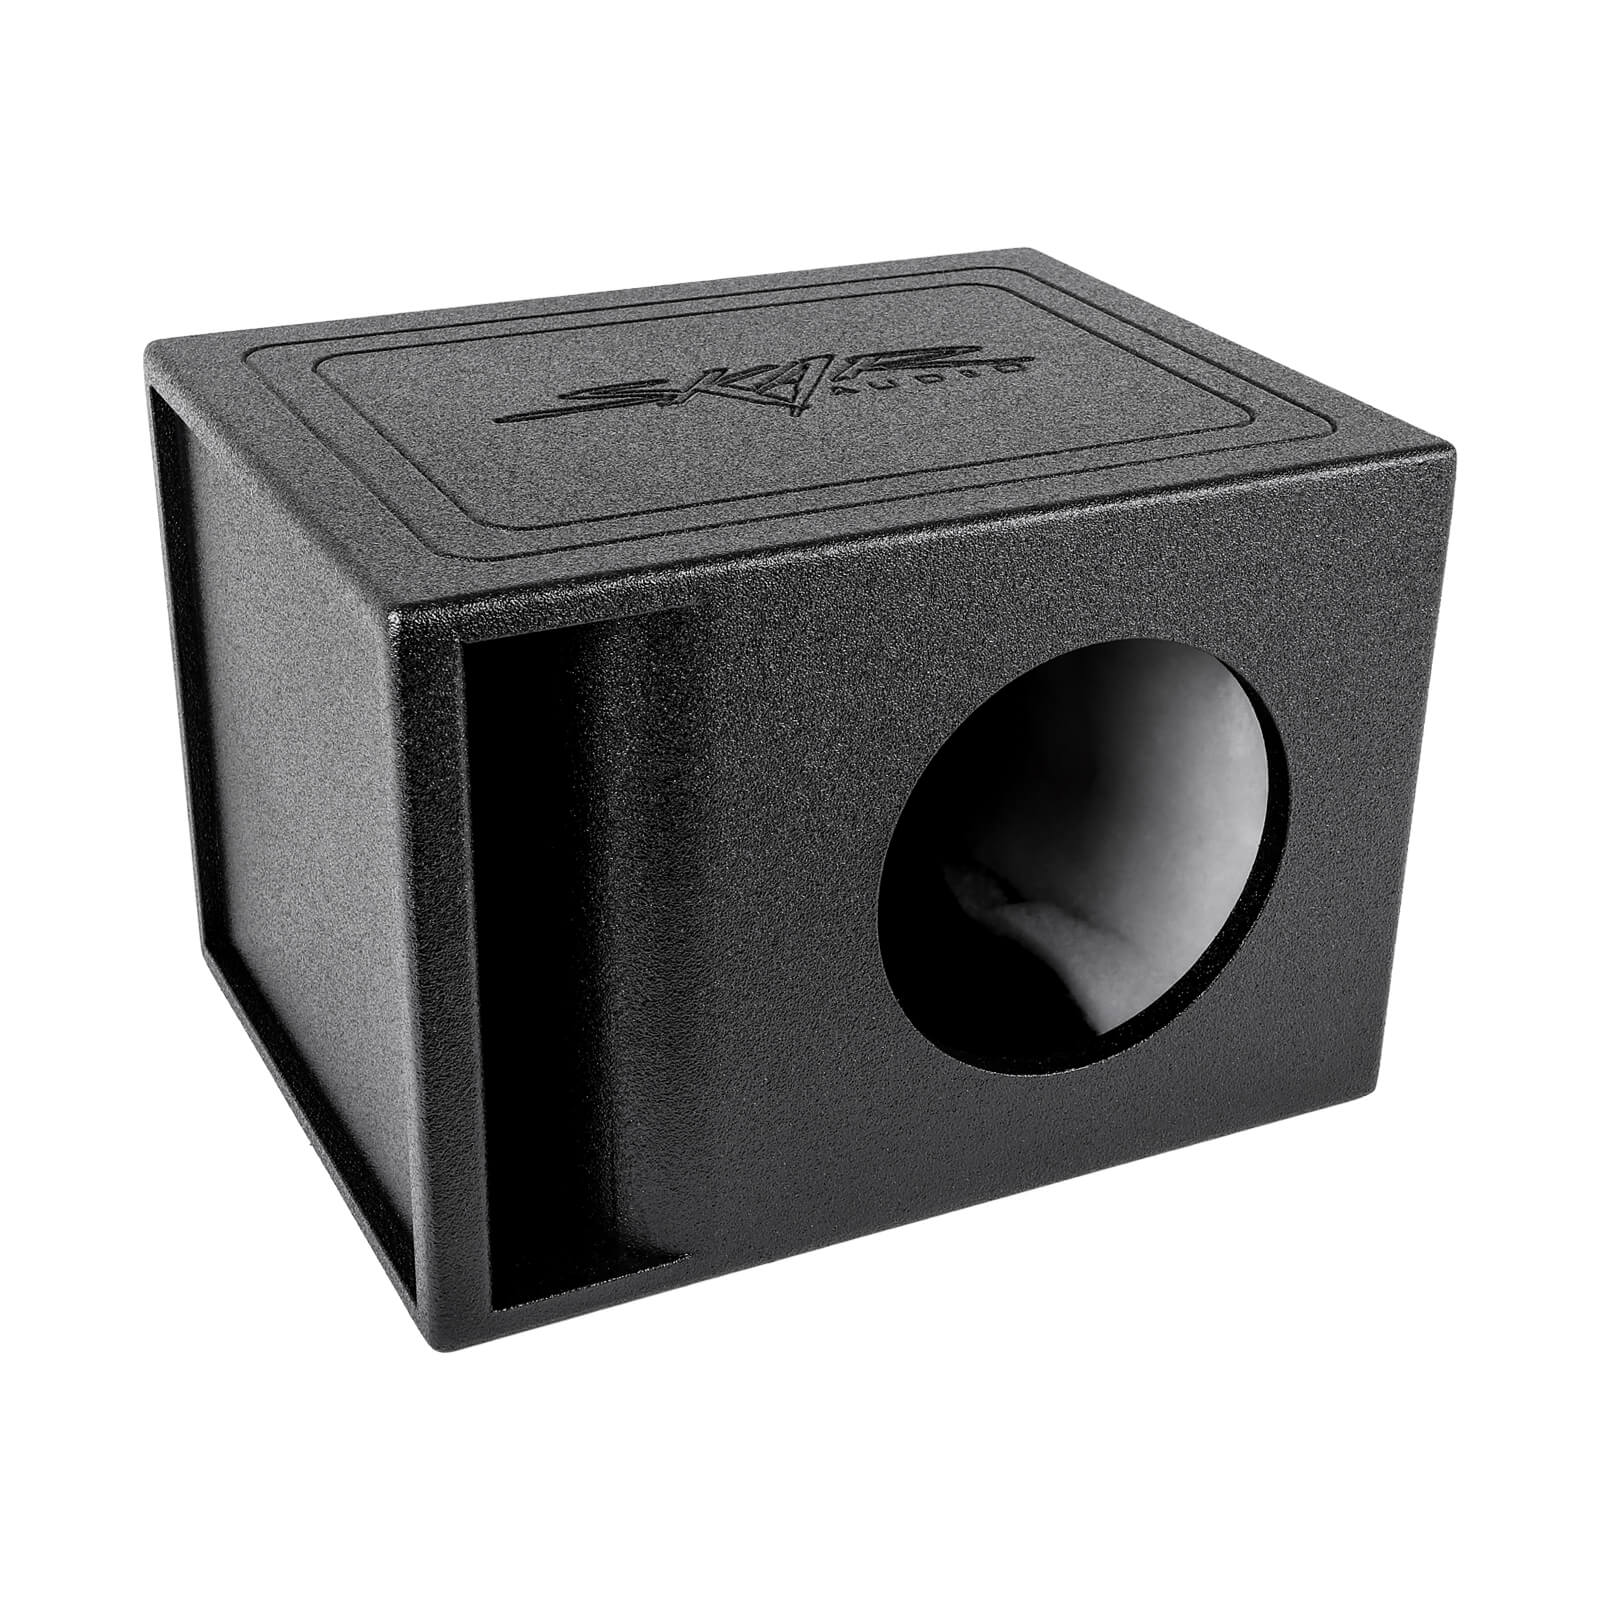 "Skar Audio AR1X8V - Single 8"" Armor Coated Ported Subwoofer Enclosure with Kerf Port - Main Image"